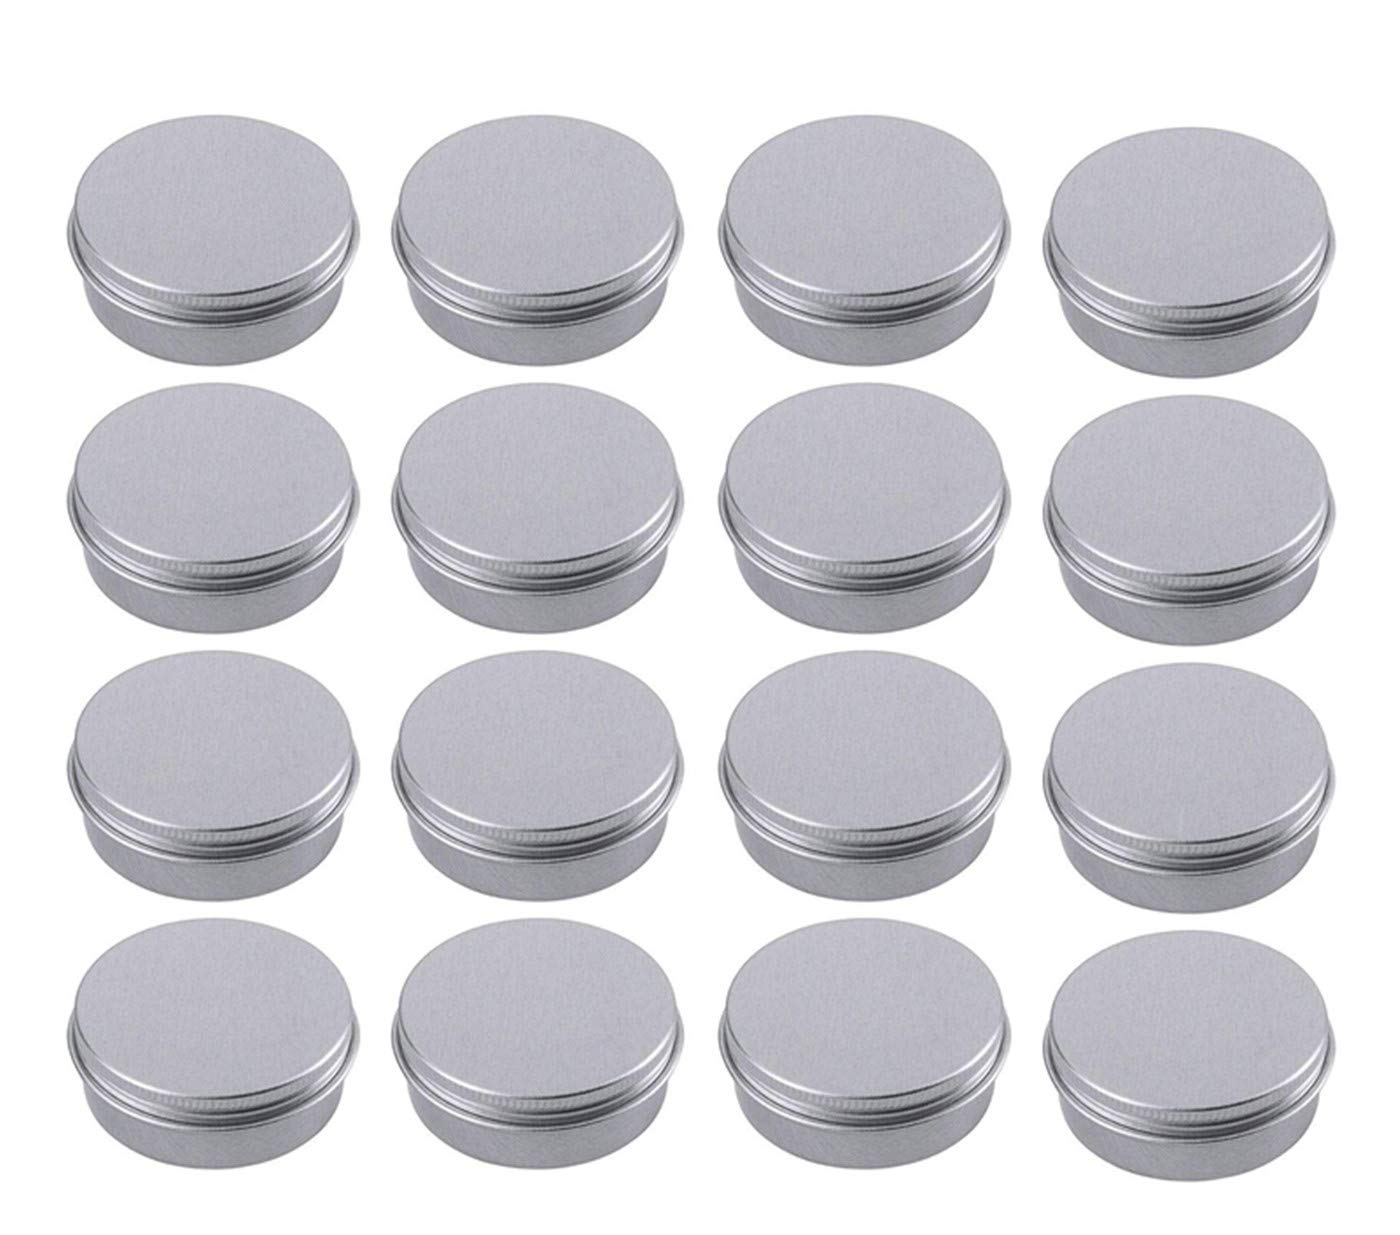 Healthcom 21-Pack 2 Oz/60ml Round Aluminum Tin Cans Screw Top Metal Lid Tins Makeup Cream Lip Balm Jars Empty Cosmetic Storage Sample Container Boxes Organization Kit for Lip Balm Salve Crafts Spice Candles Tea Gifts,Silver